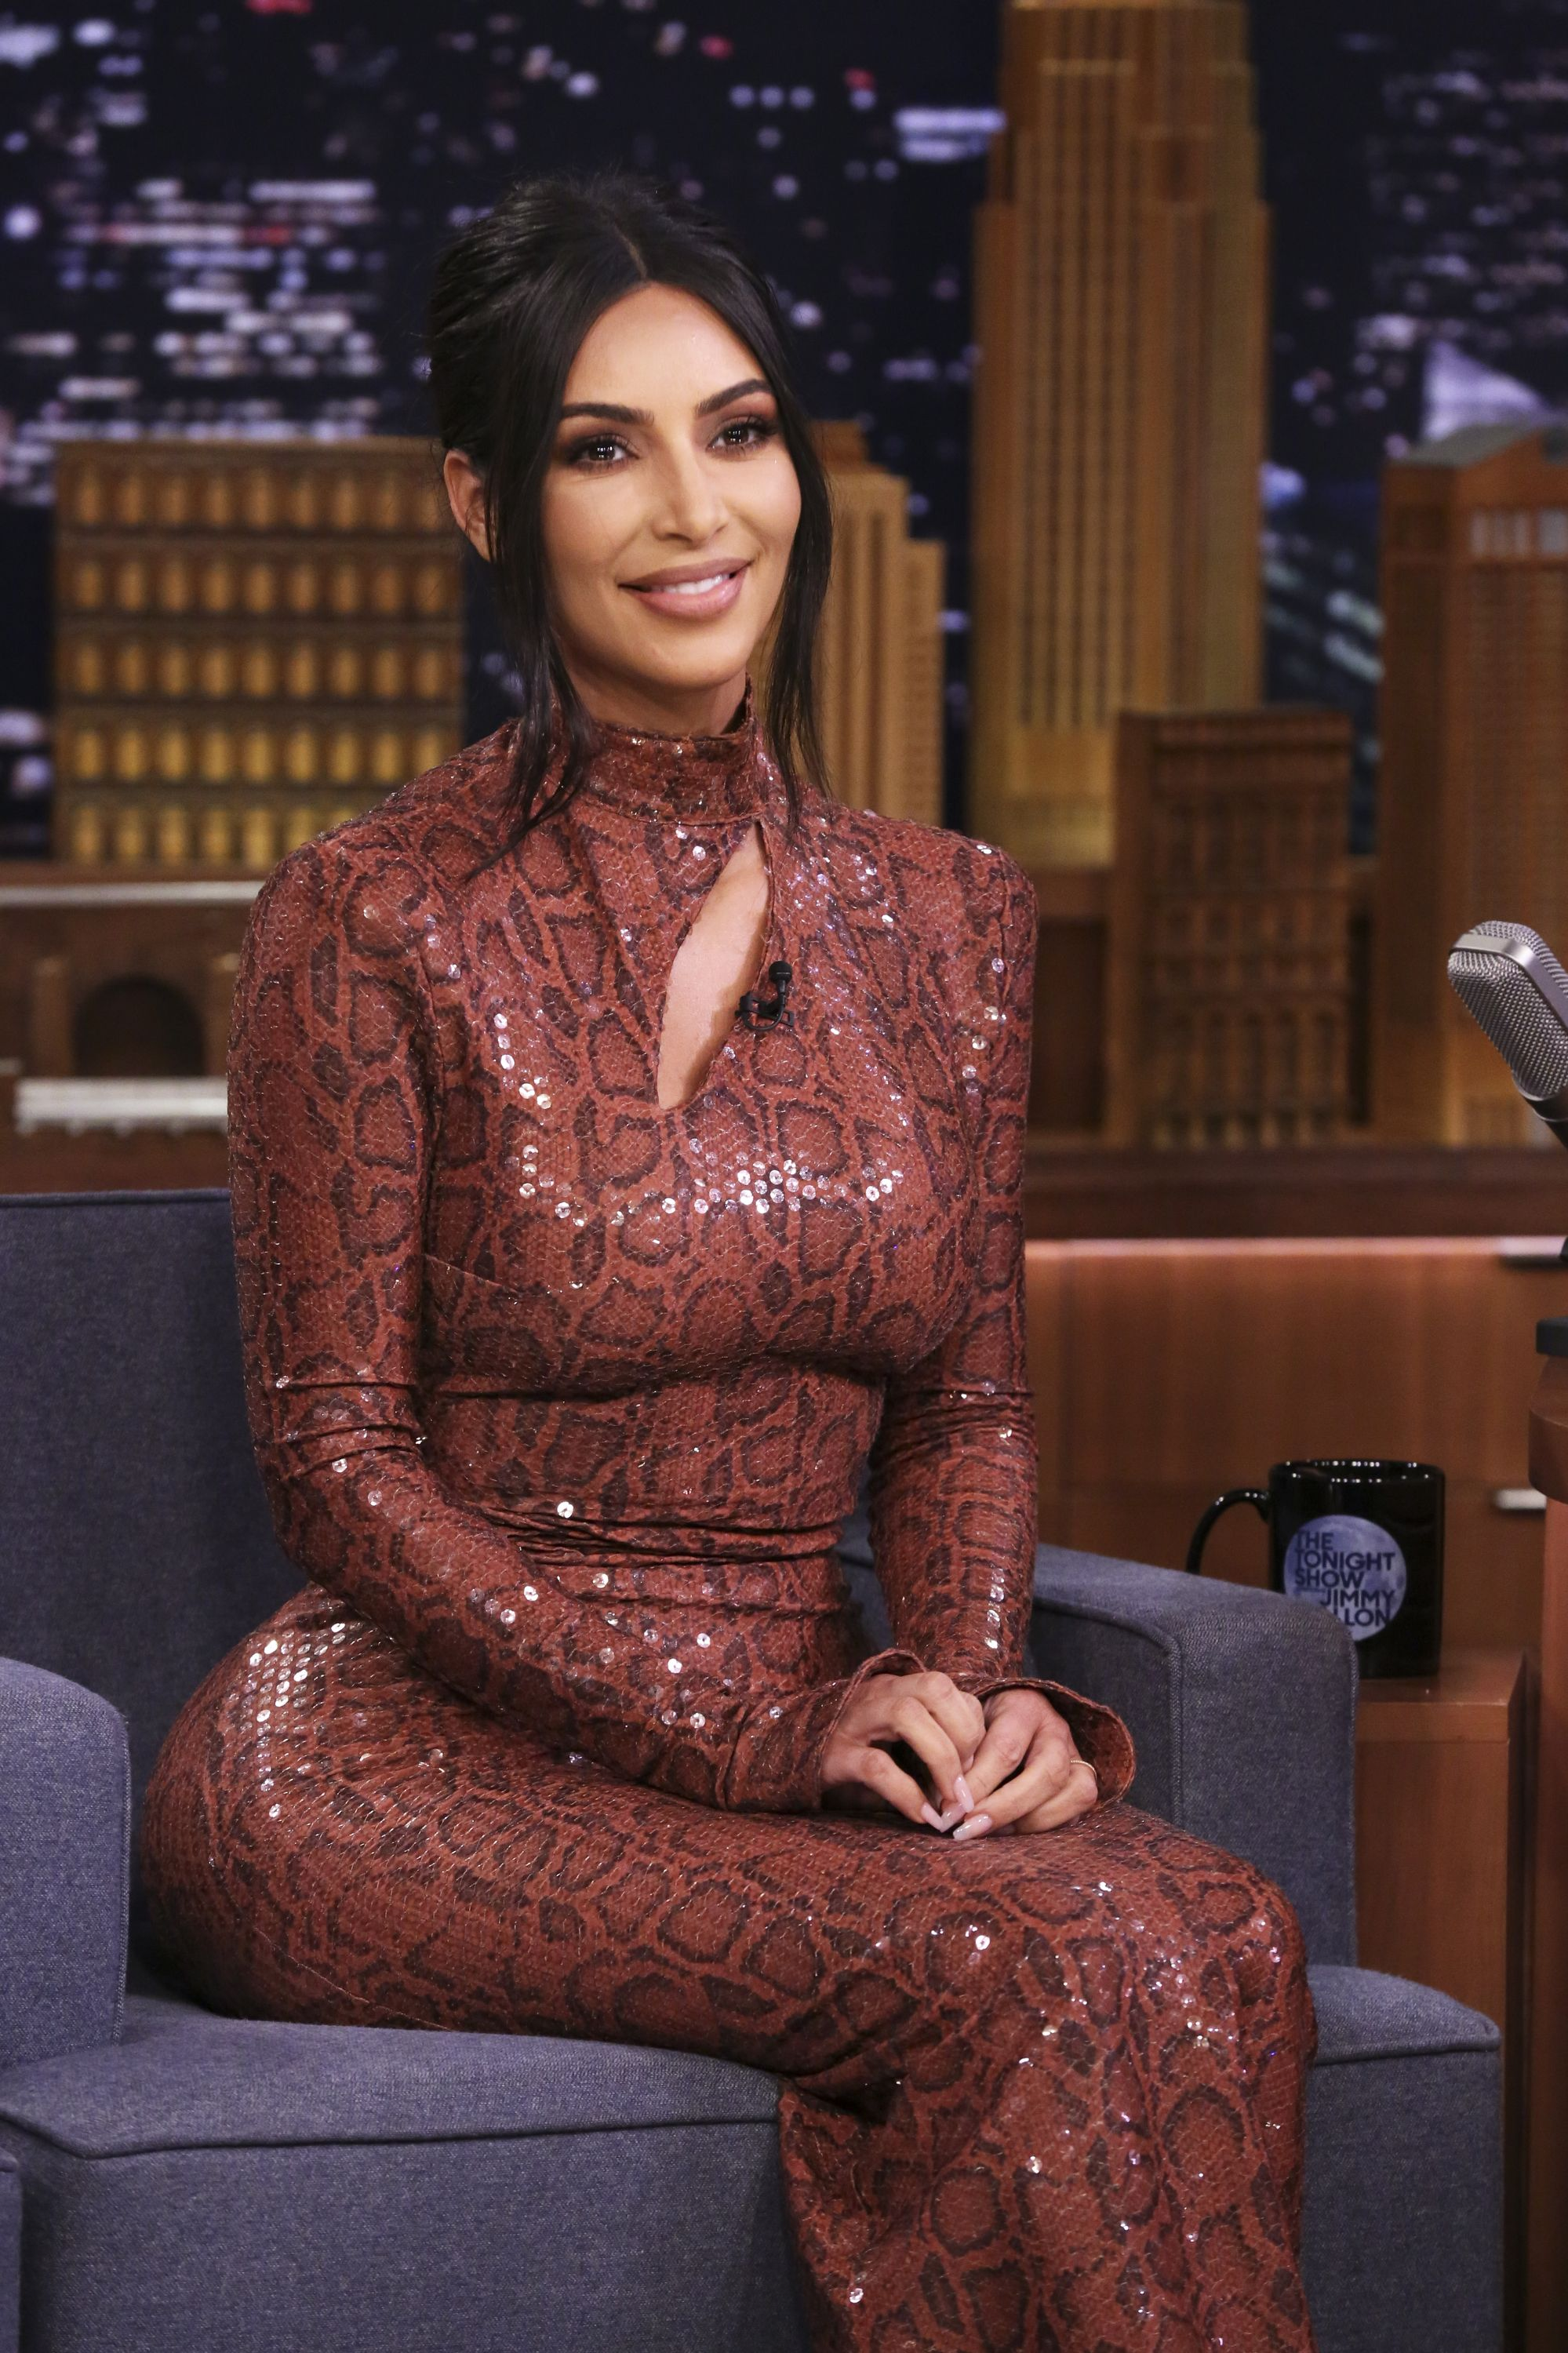 Fans Are Dragging Kim Kardashian for Spelling Everything Wrong in Her Latest Instagram Caption